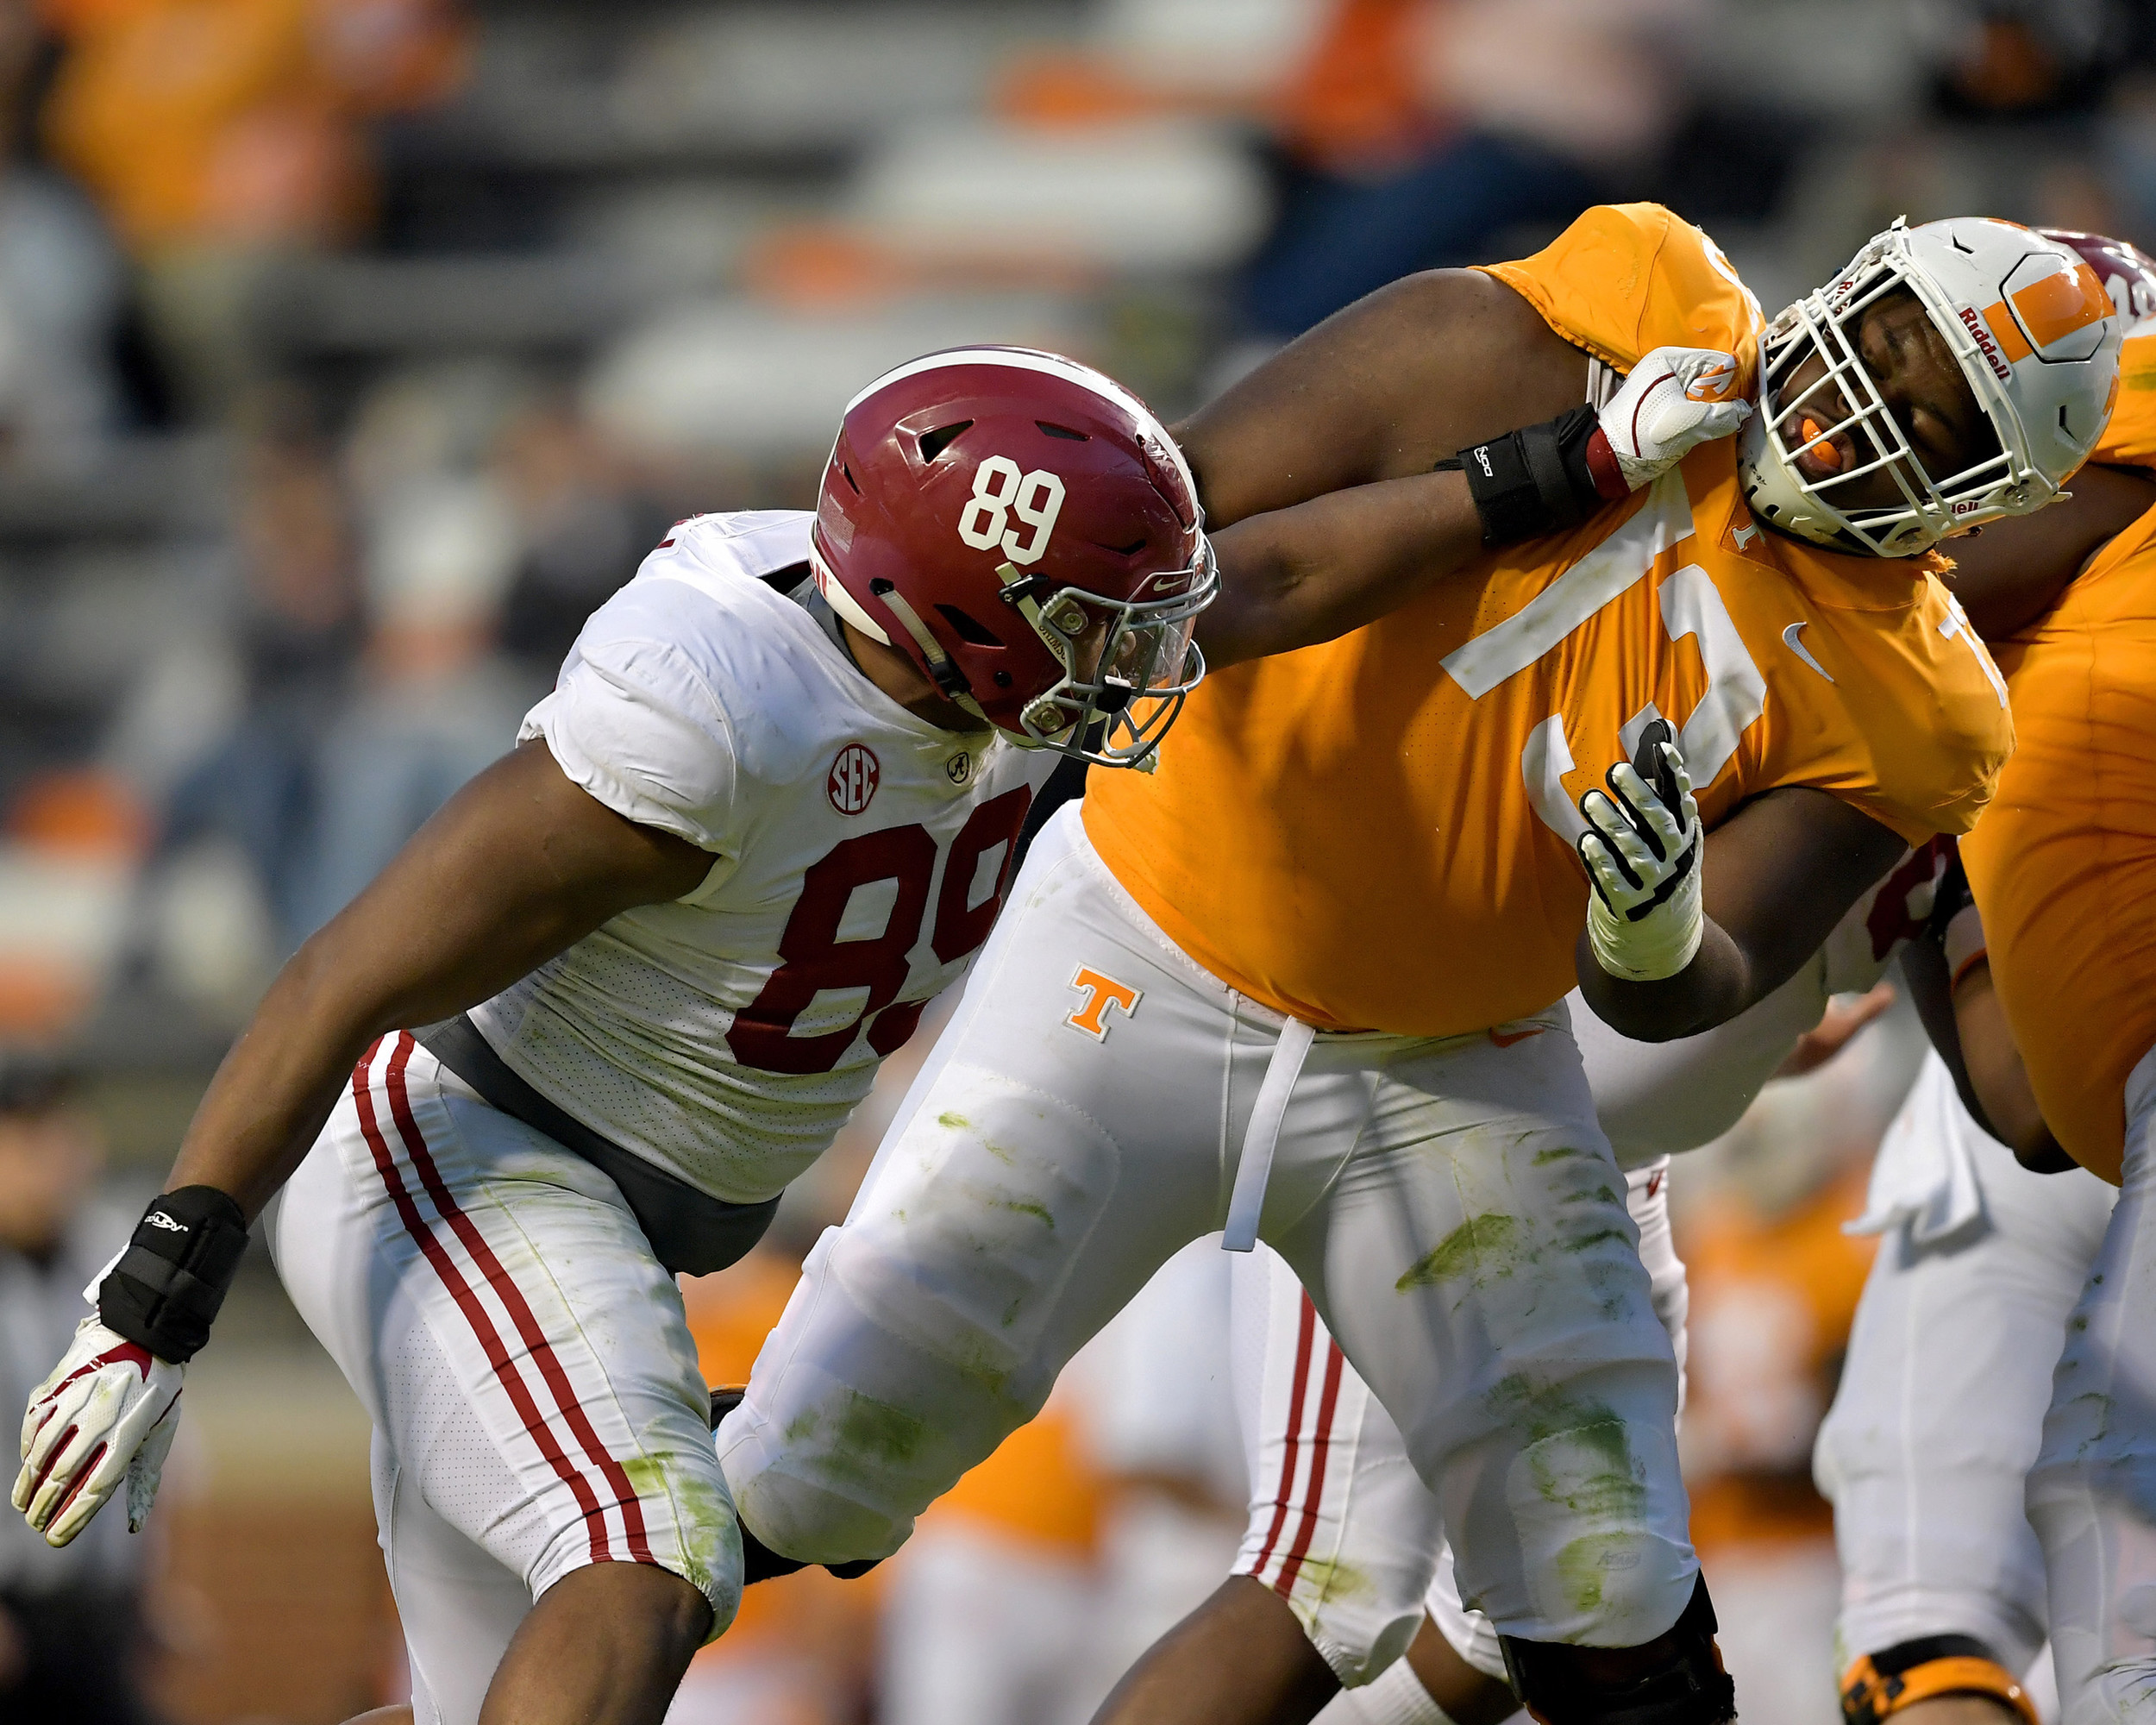 Alabama Crimson Tide defensive lineman LaBryan Ray (89) and Tennessee Volunteers Deandre Johnson (13) battle at the line of scrimmage in the fourth quarter of the NCAA football game on Saturday, Oct. 20, 2018, at Neyland Stadium in Knoxville. Tenn. Alabama wins 58-21. (Photo by Lee Walls)